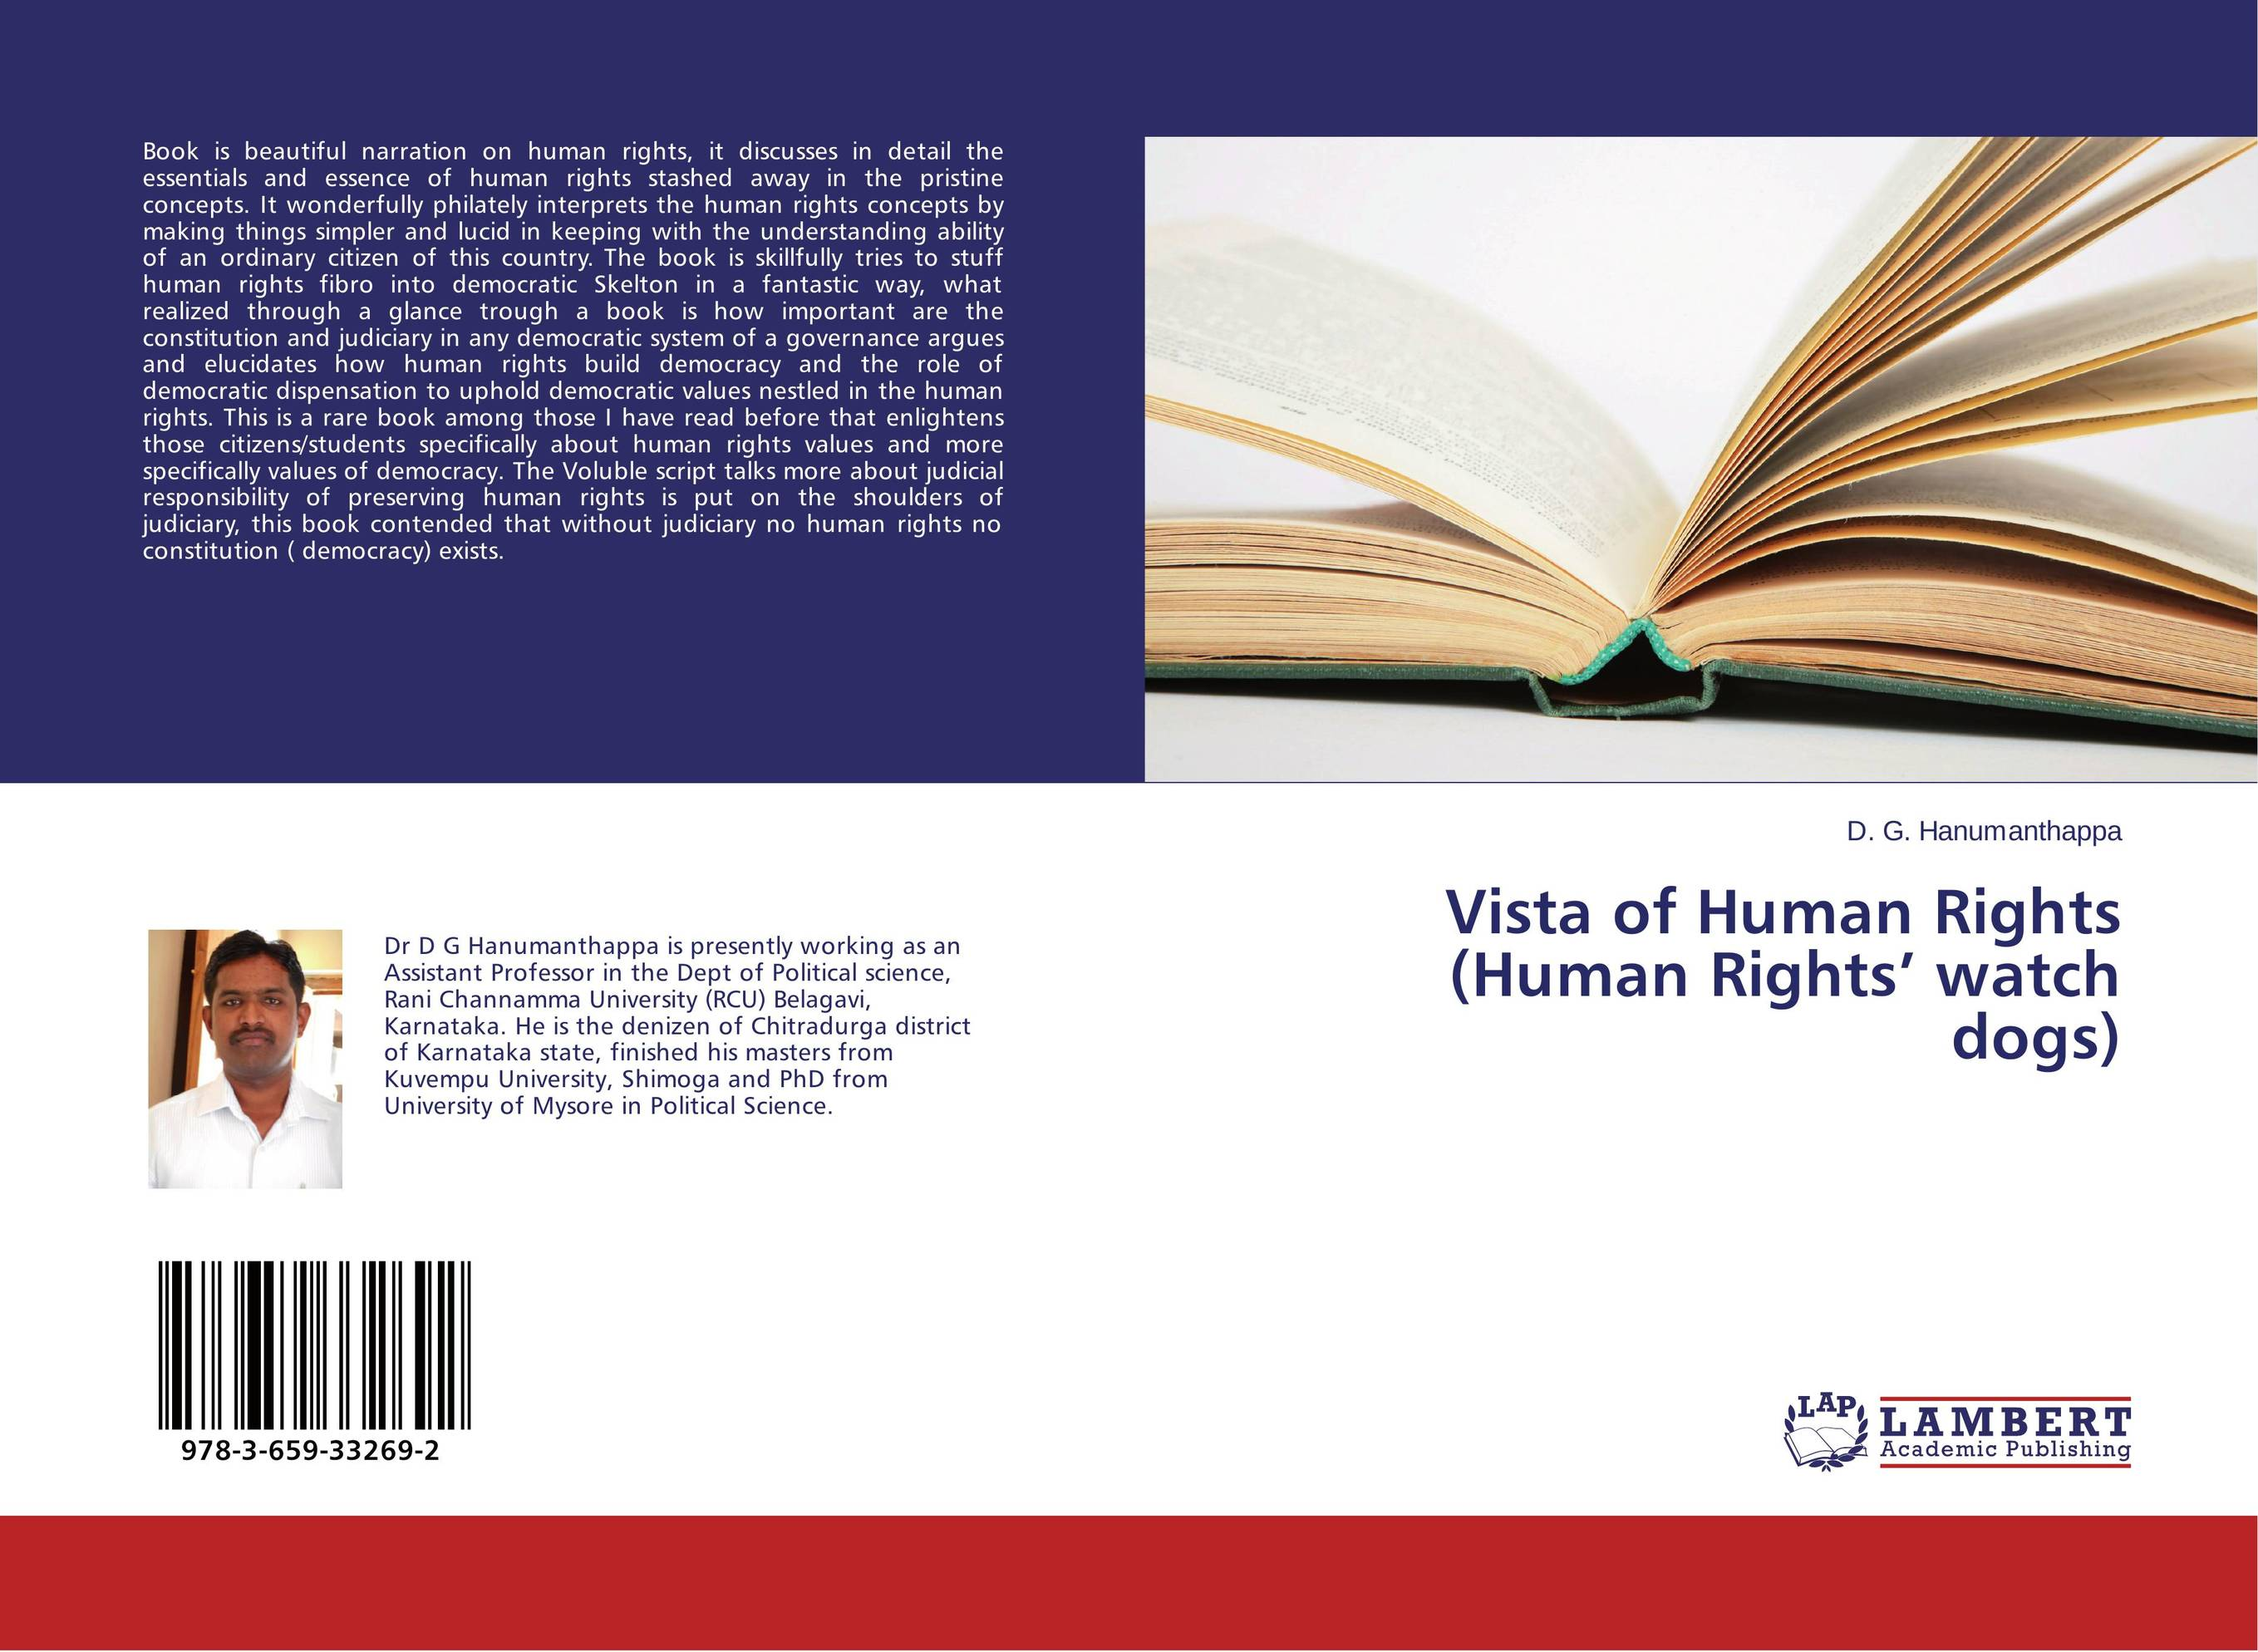 Vista of Human Rights (Human Rights' watch dogs) the heart of human rights